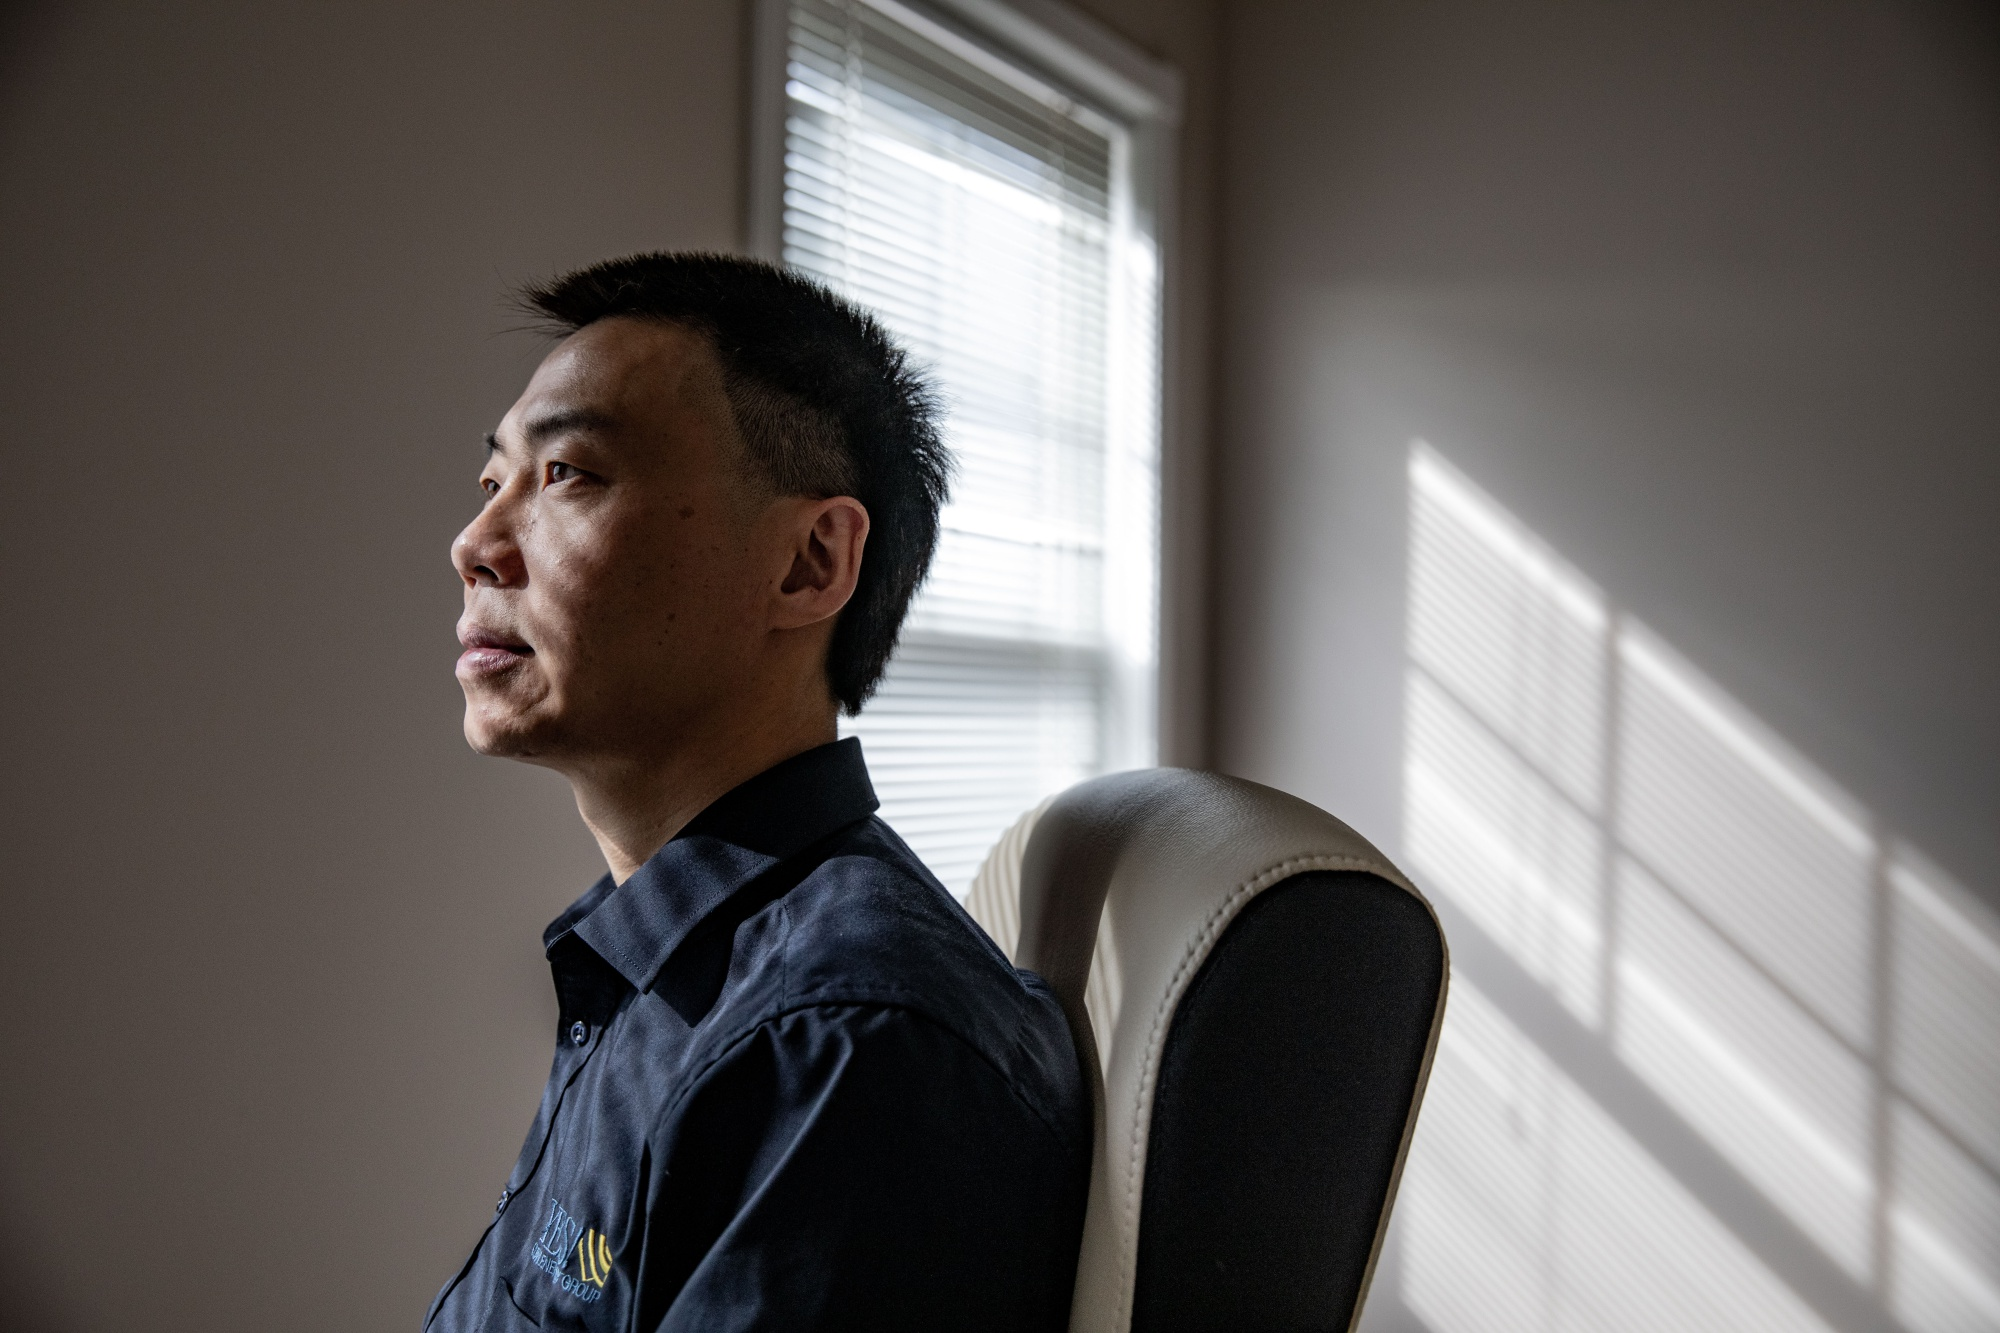 U.S. Targeting of Chinese Scientists Fuels a Brain Drain